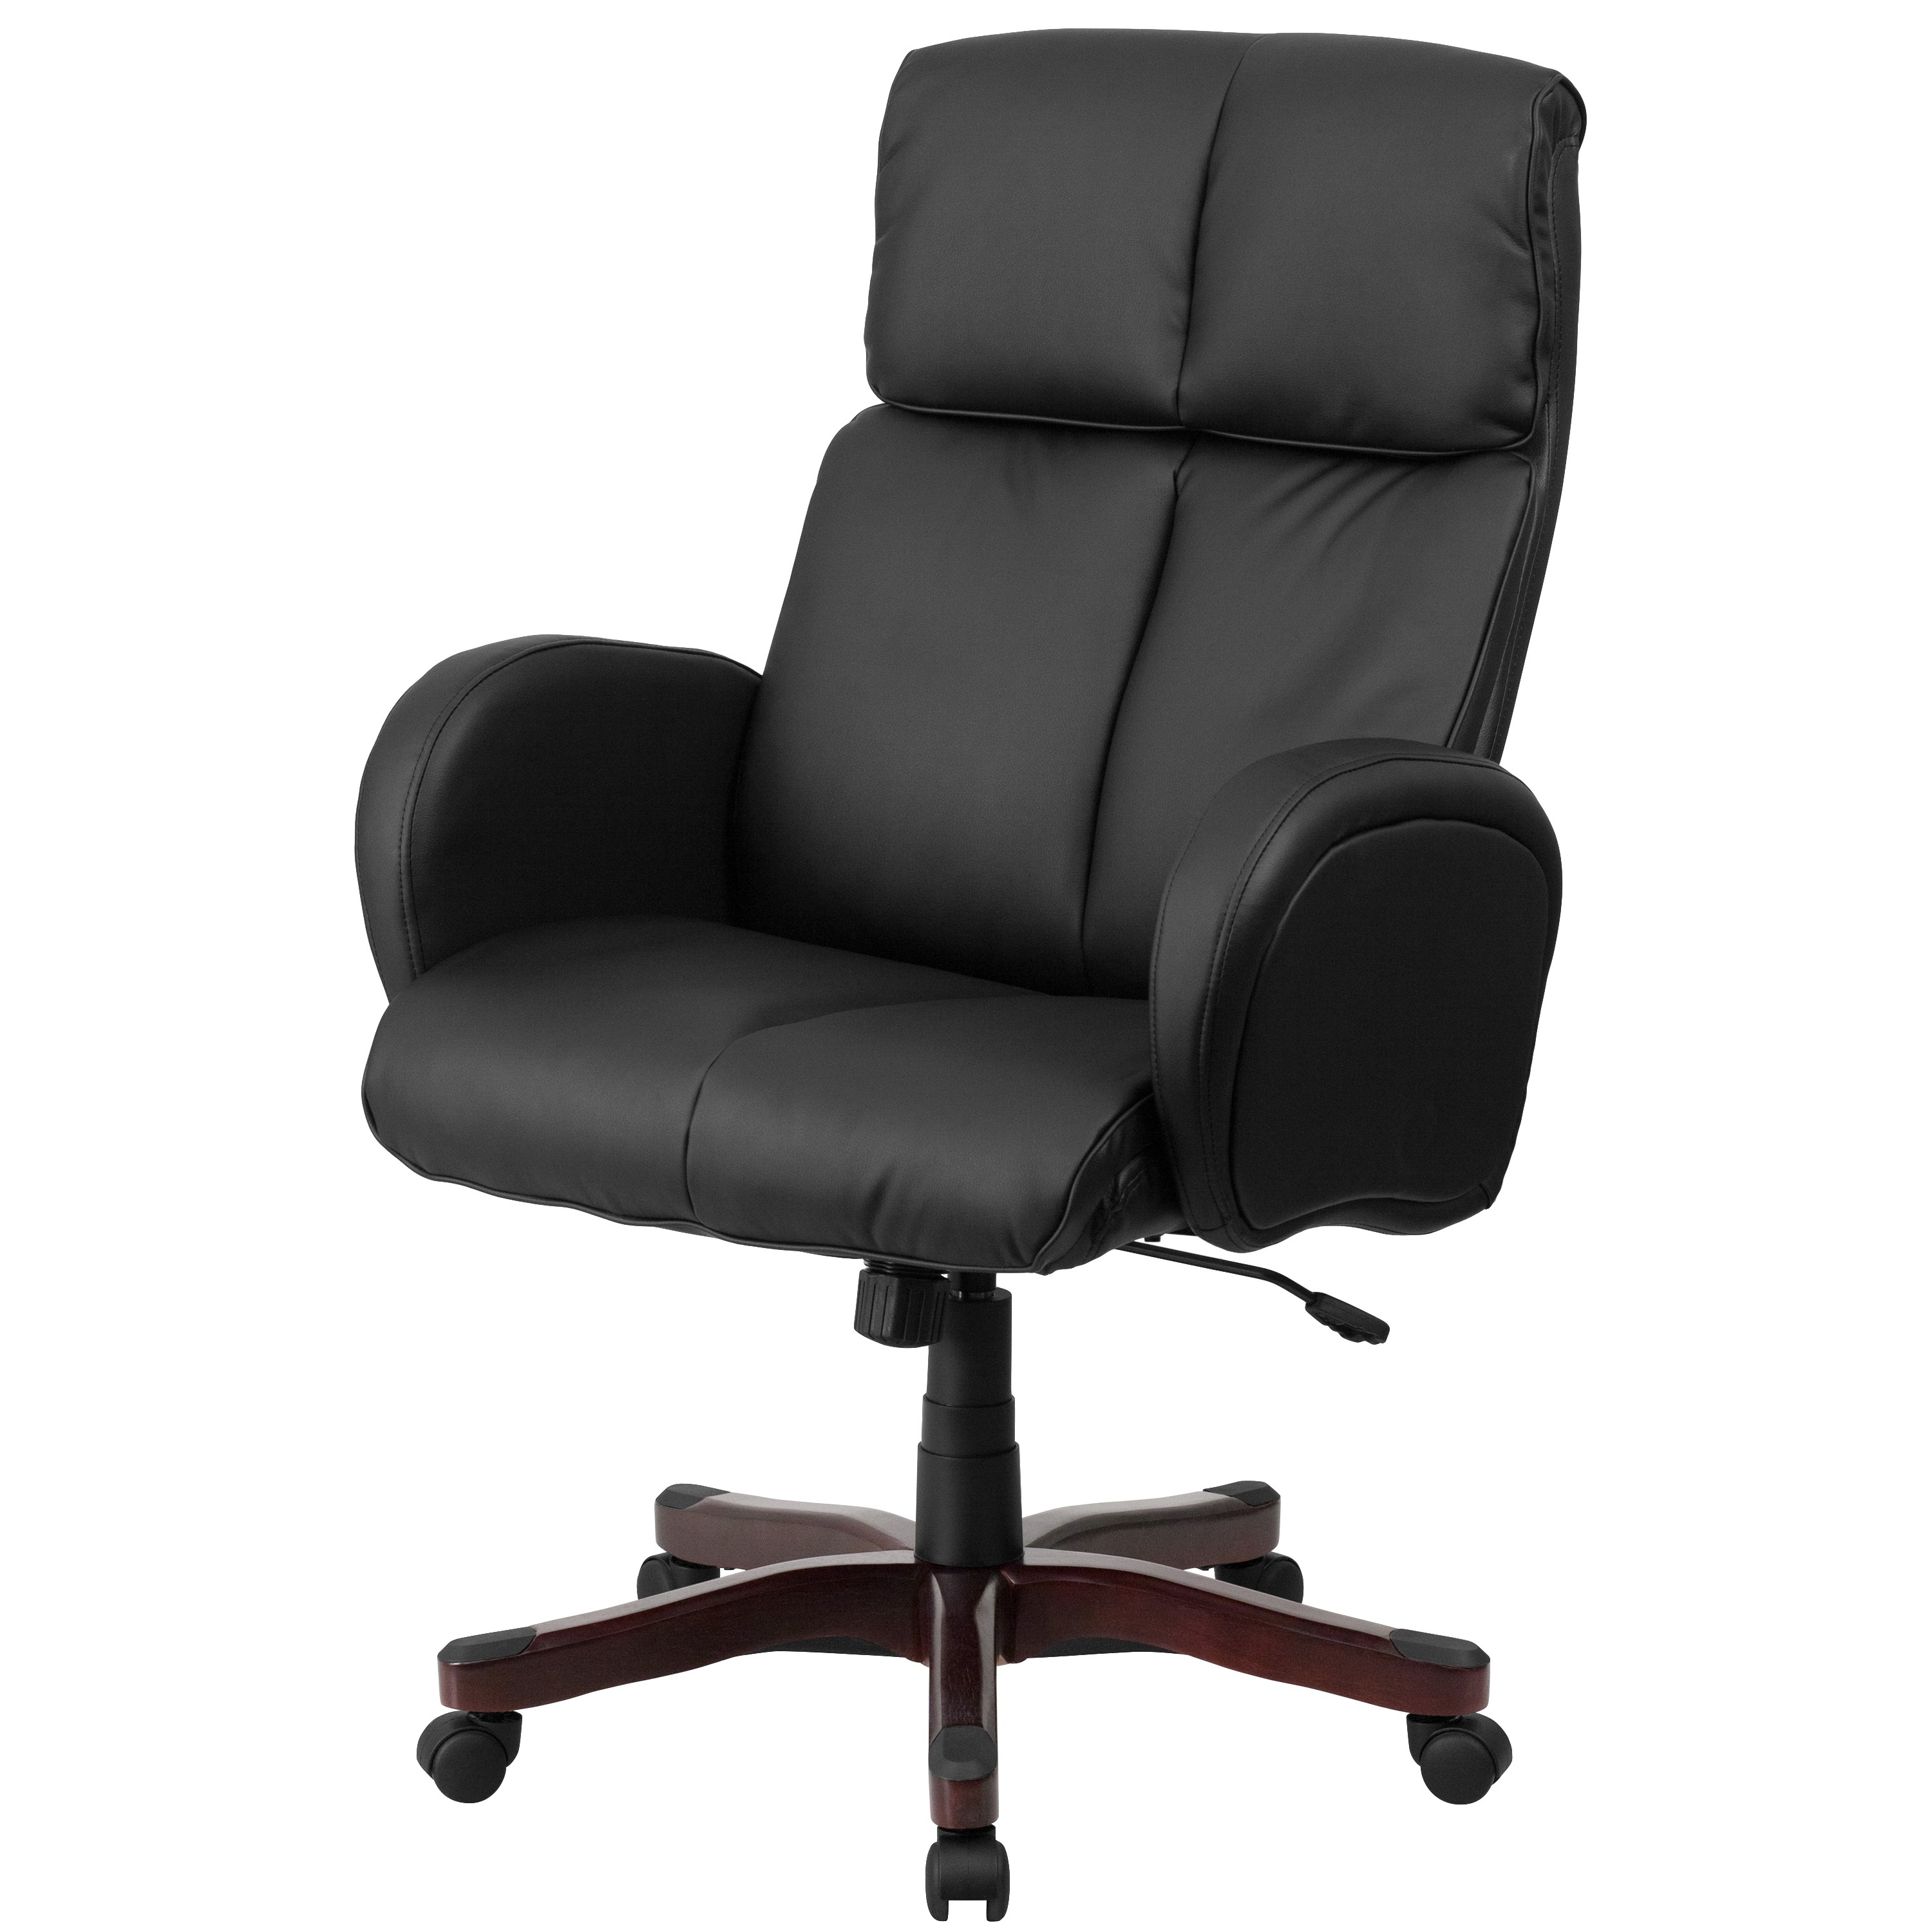 High Back Black Leather Executive Office Chair With Fully Pertaining To 2018 Upholstered Executive Office Chairs (View 4 of 20)